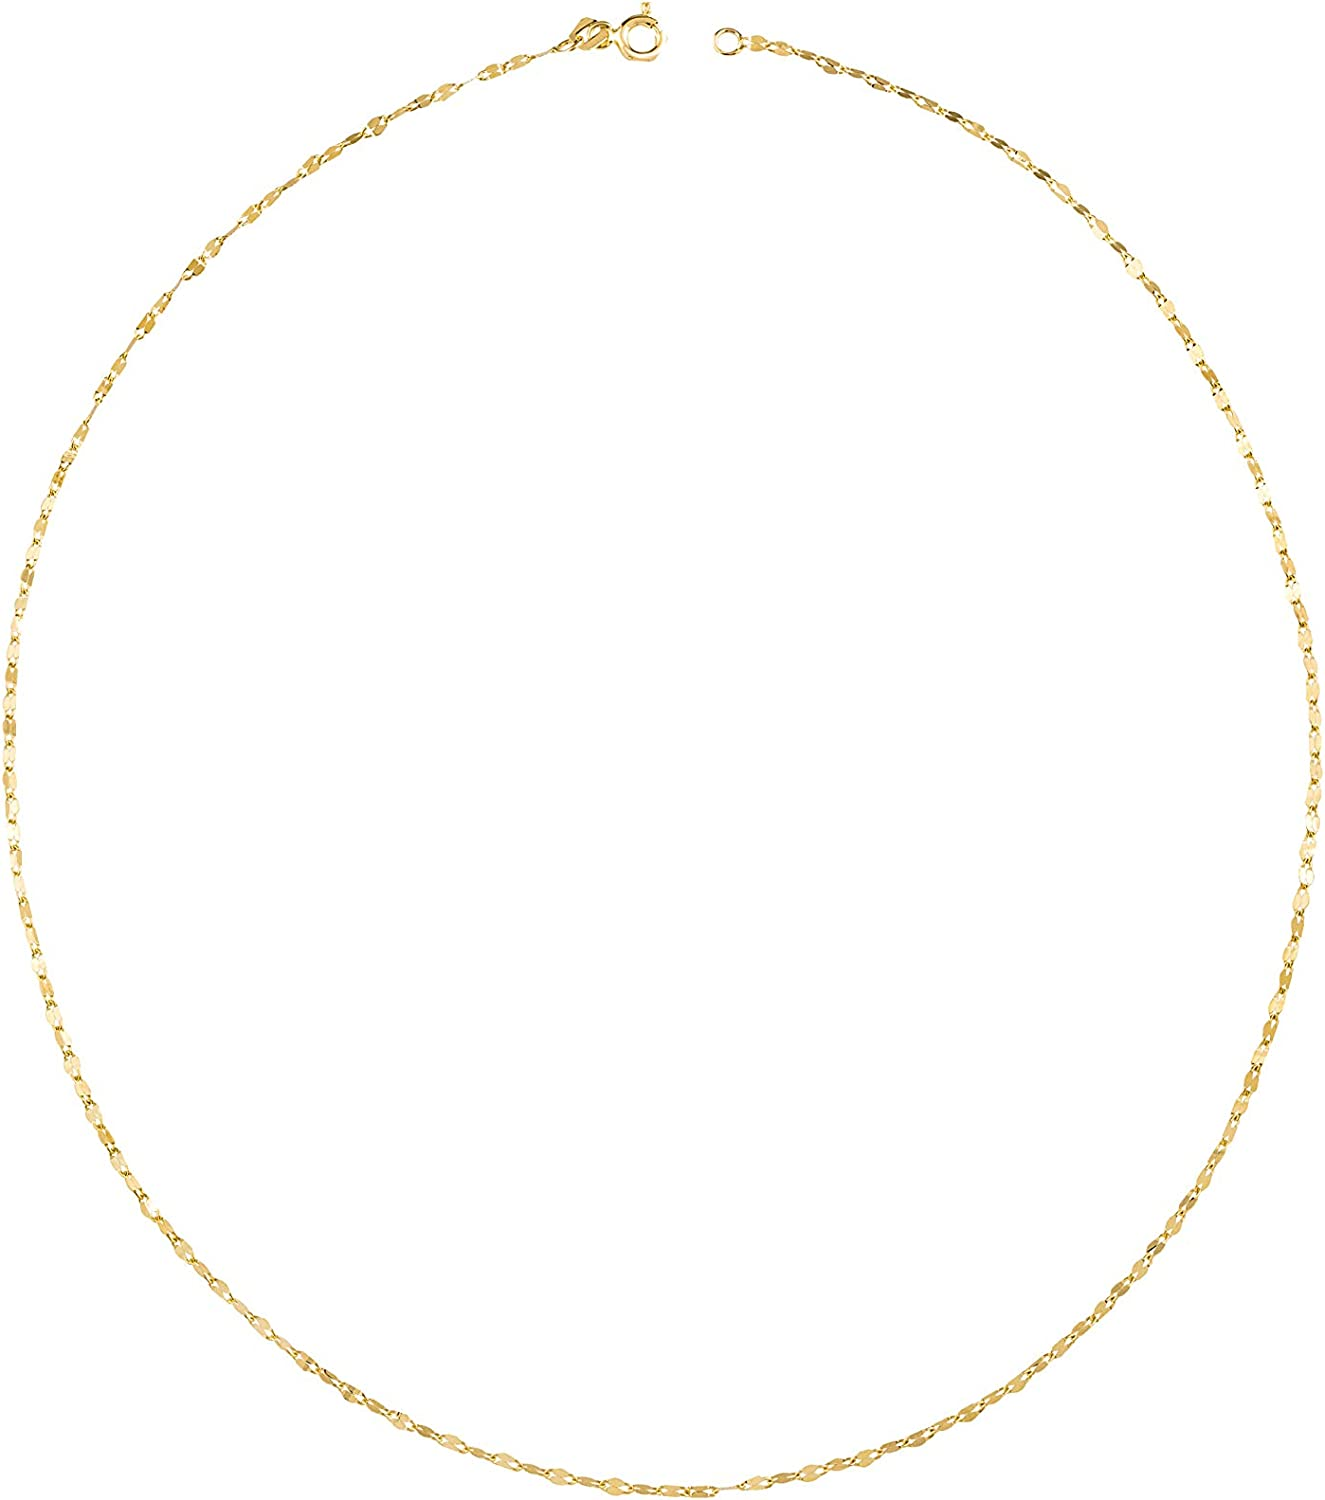 Max Tulsa Mall 54% OFF Atasay Jewelry Solid Gold Chain Yellow Neckl 14K Necklace -